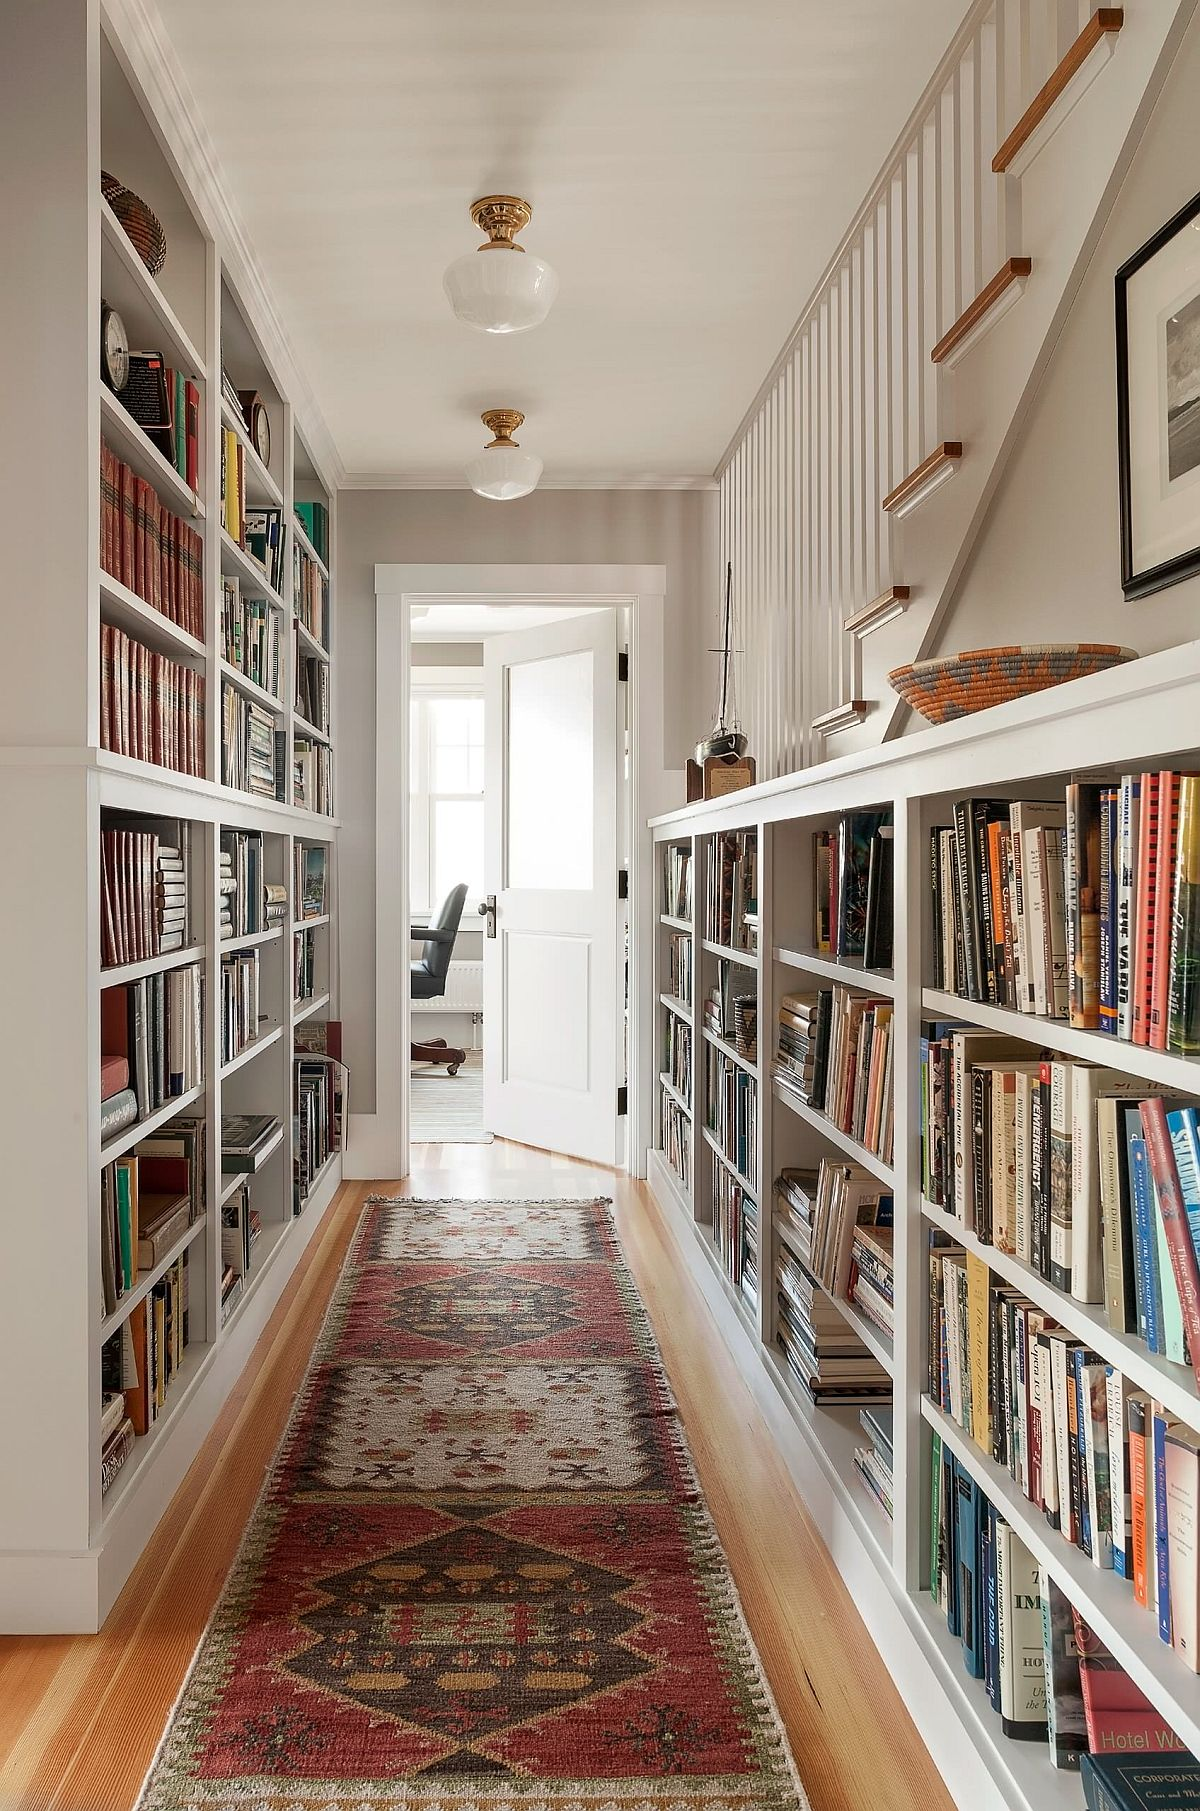 Simple and practical bookshelf design for the small hallway